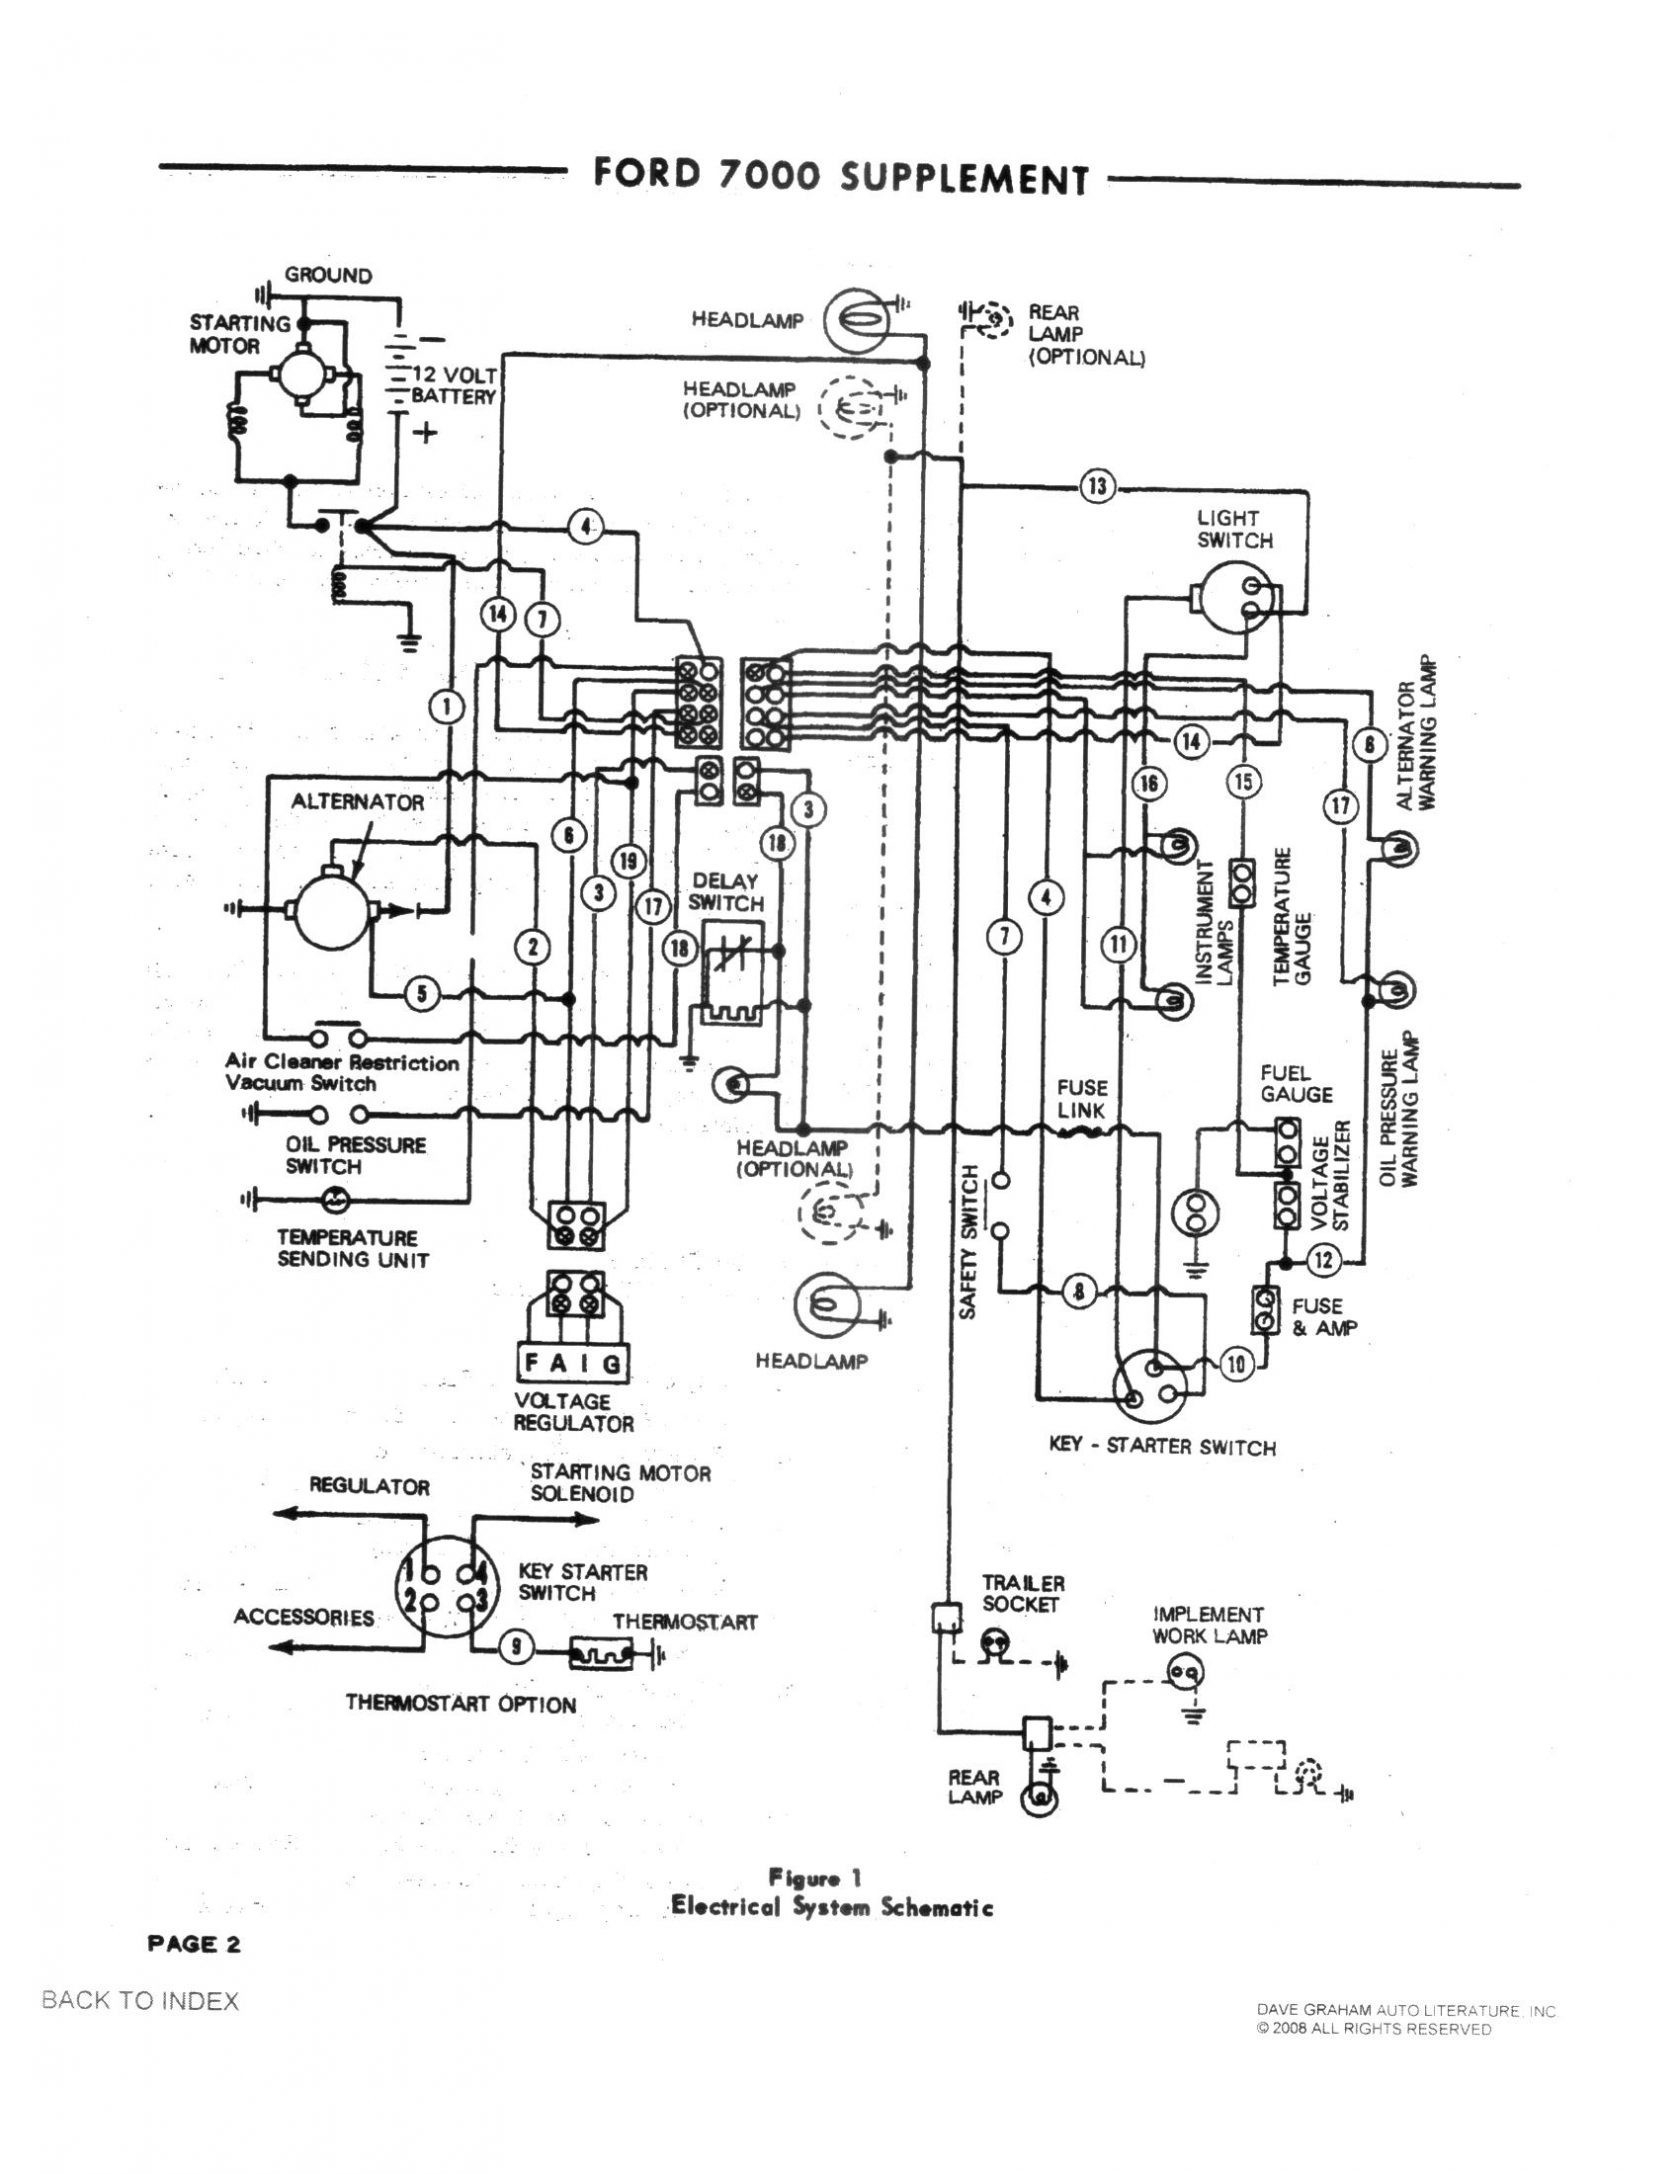 12 Volt Socket Wiring Diagram